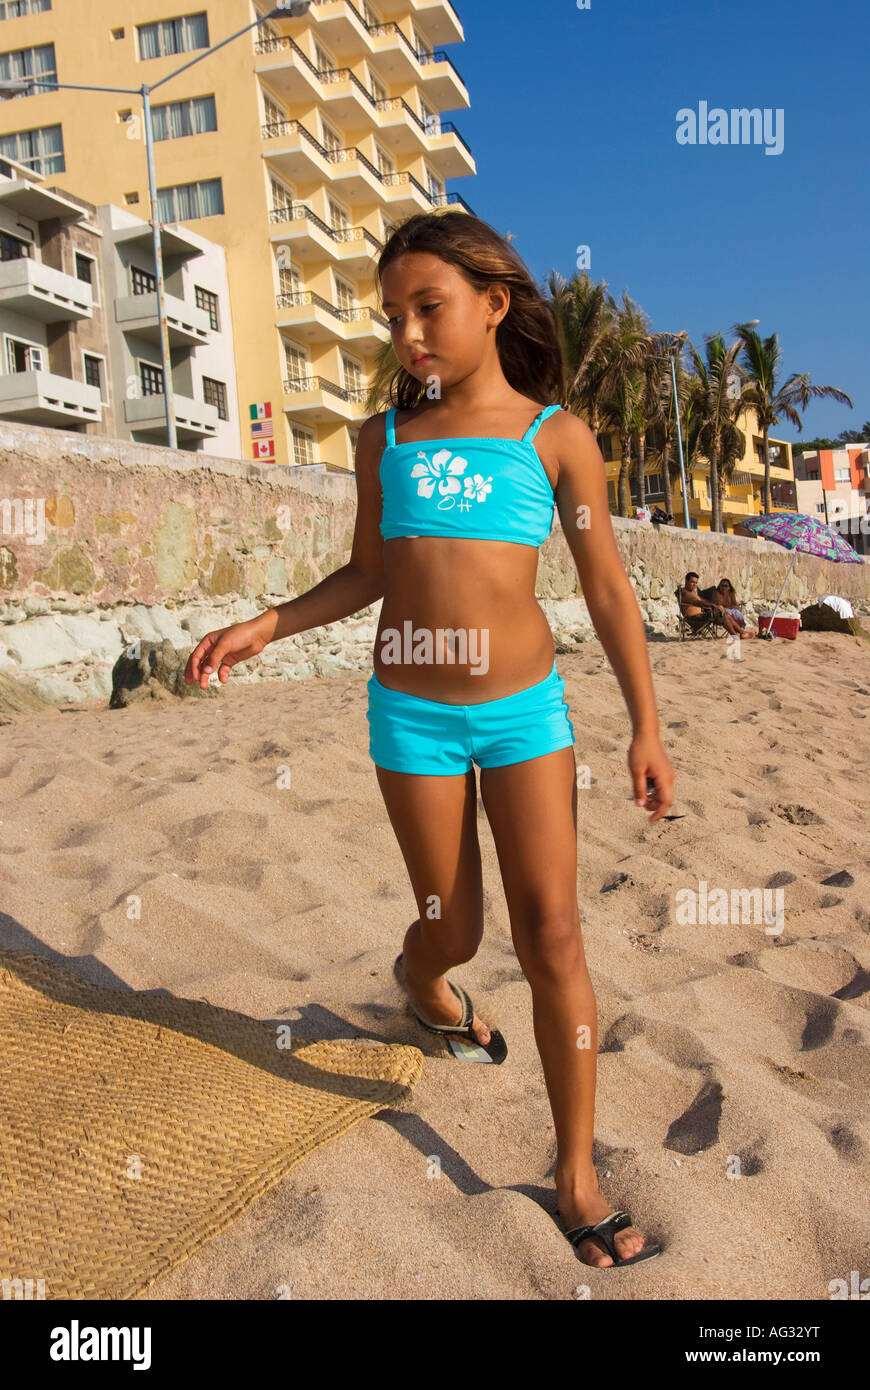 young mexican girl on a summer beach trip standing in sand